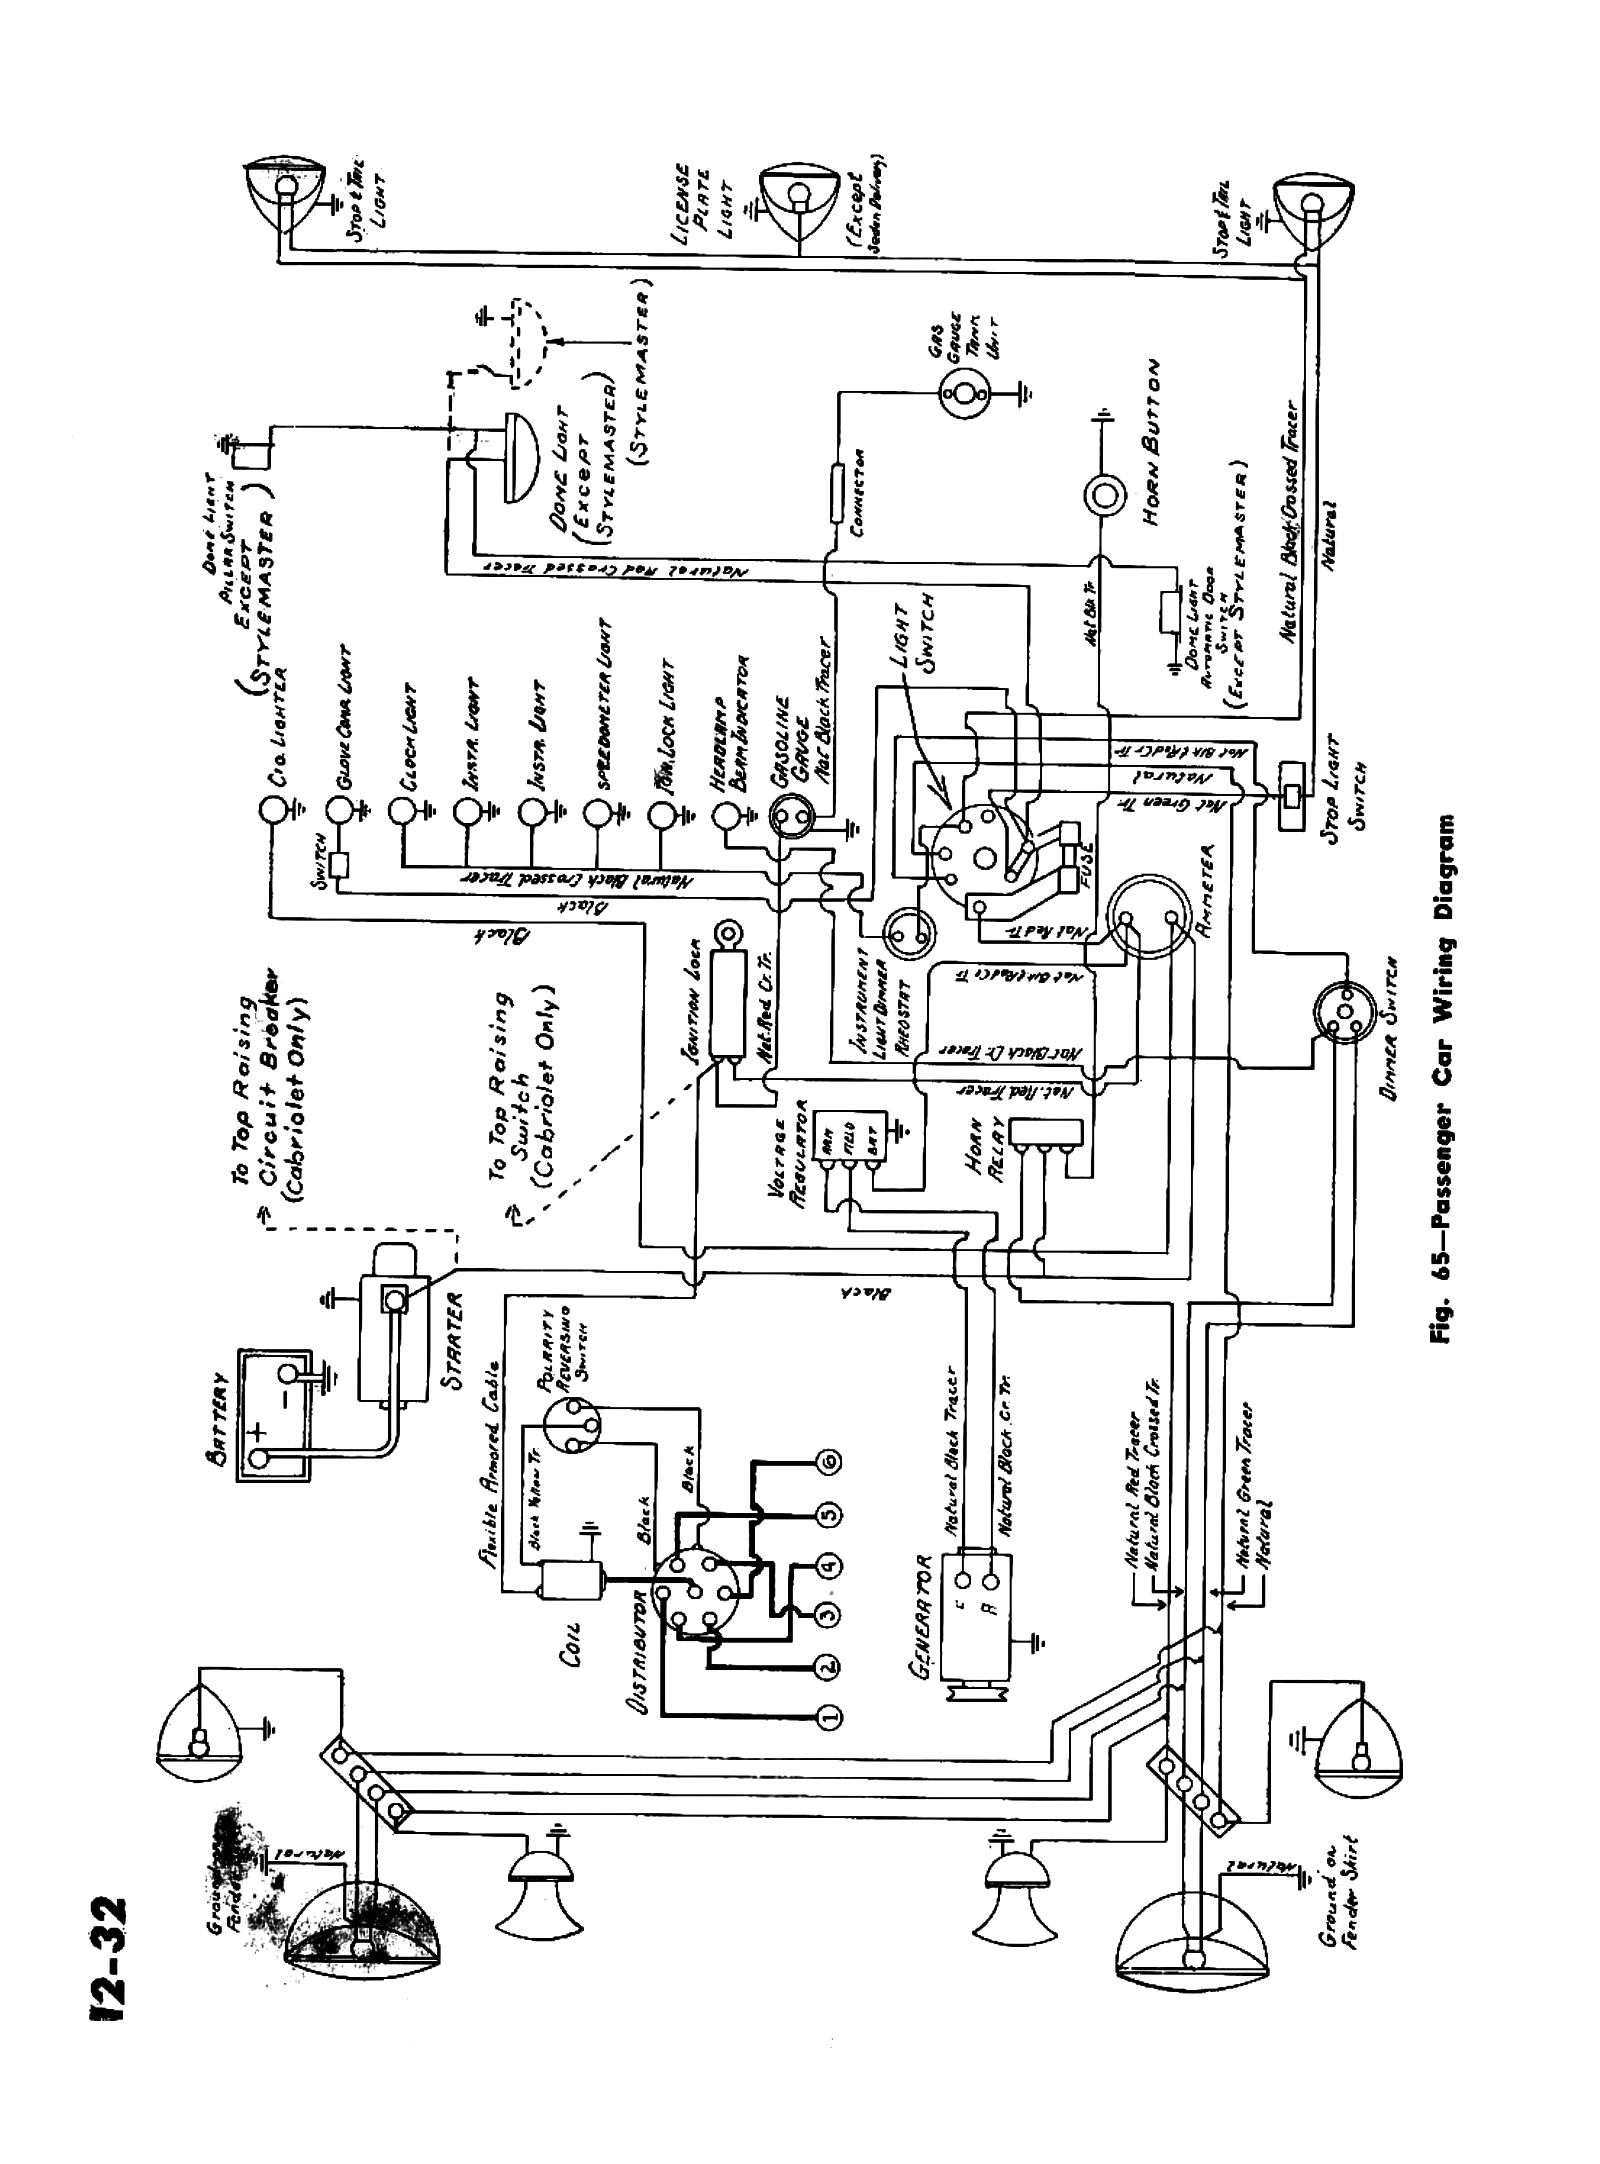 97 Camaro Fuel Pump Relay Location Com